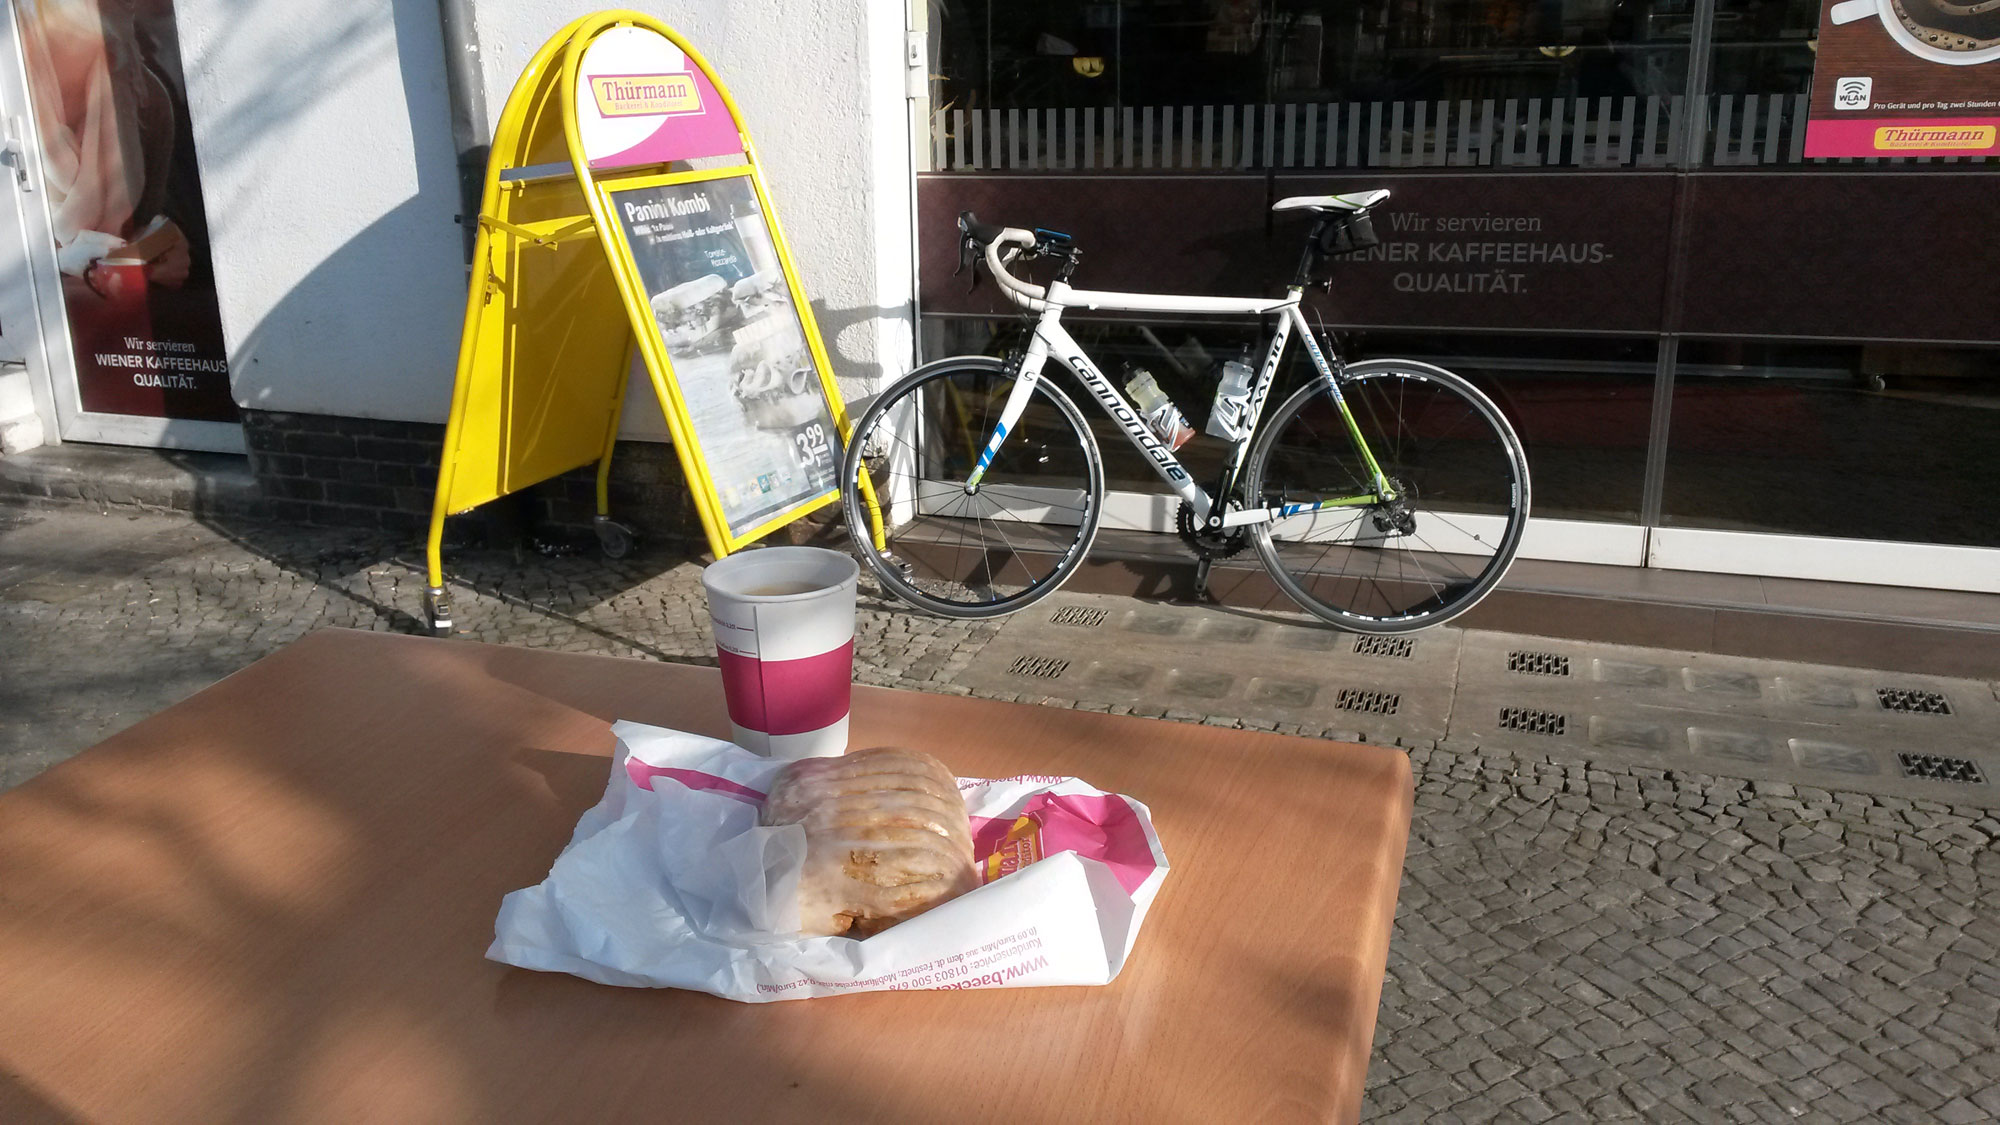 4: 19 February 2015 - enjoying a quarktasche and coffee before ending the ride to Großbeeren with 5 rounds on Tempelhof.